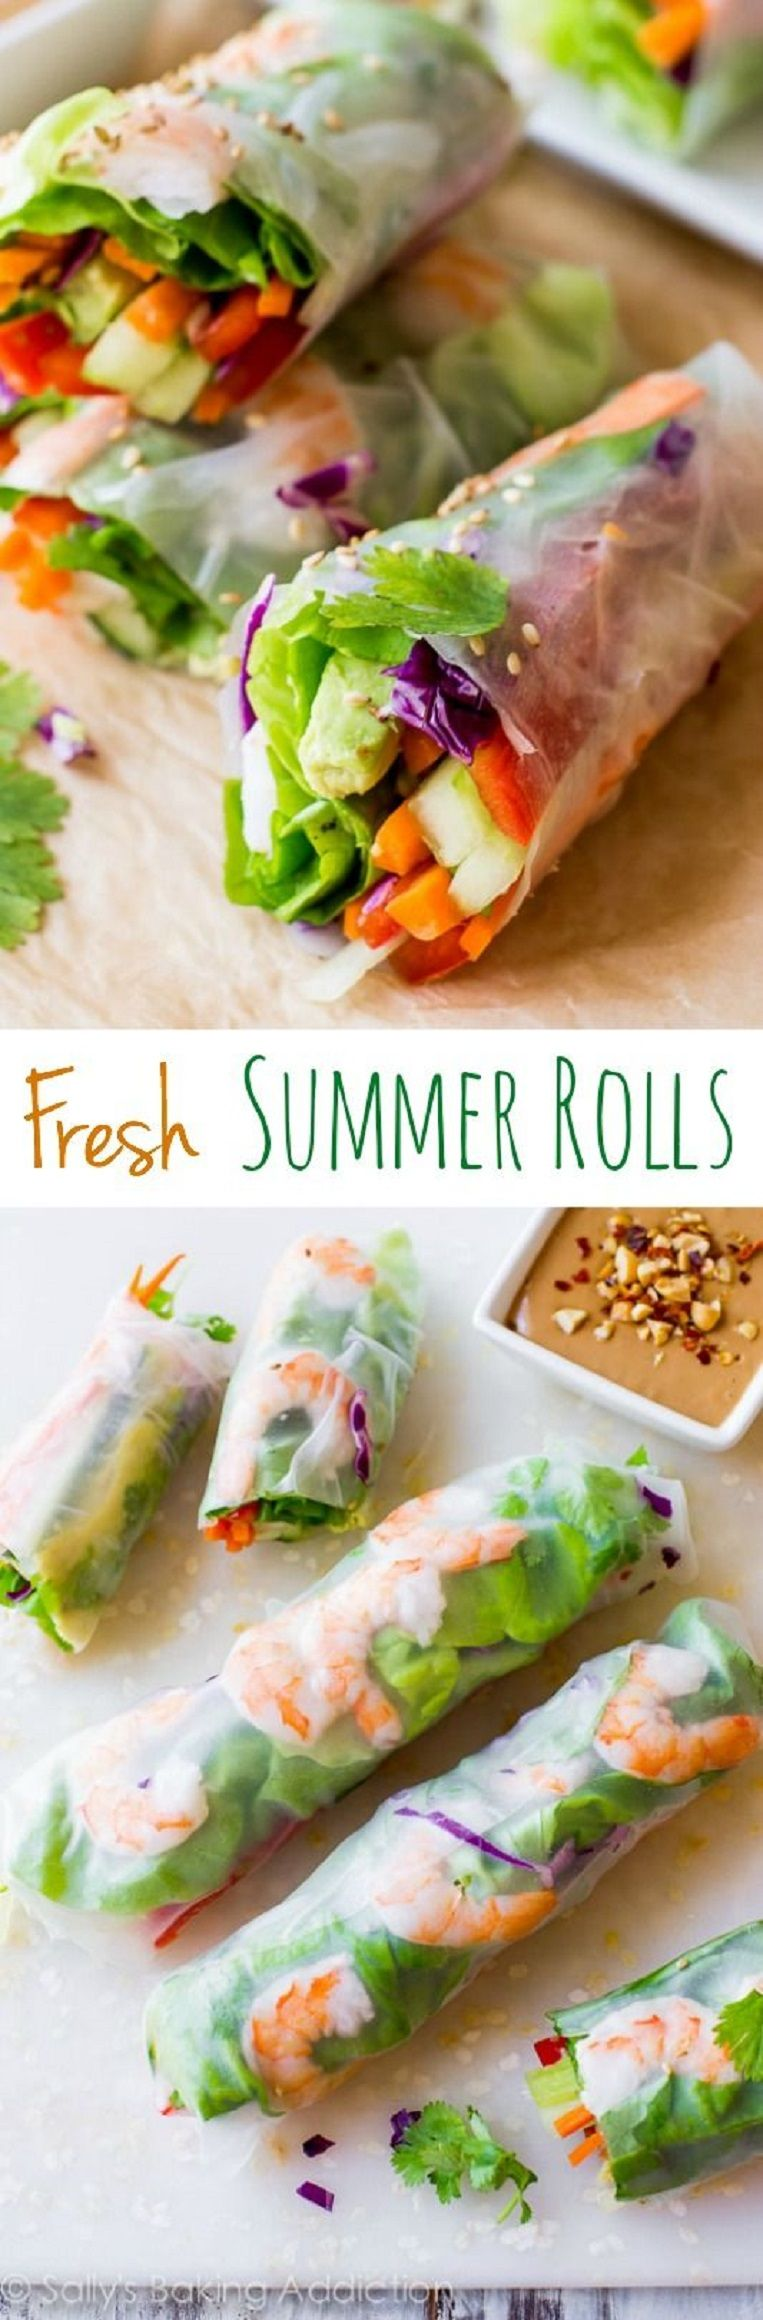 Homemade Fresh Summer Rolls with Easy Peanut Dipping Sauce - 15 Rich-Flavored Summer Rolls   GleamItUp